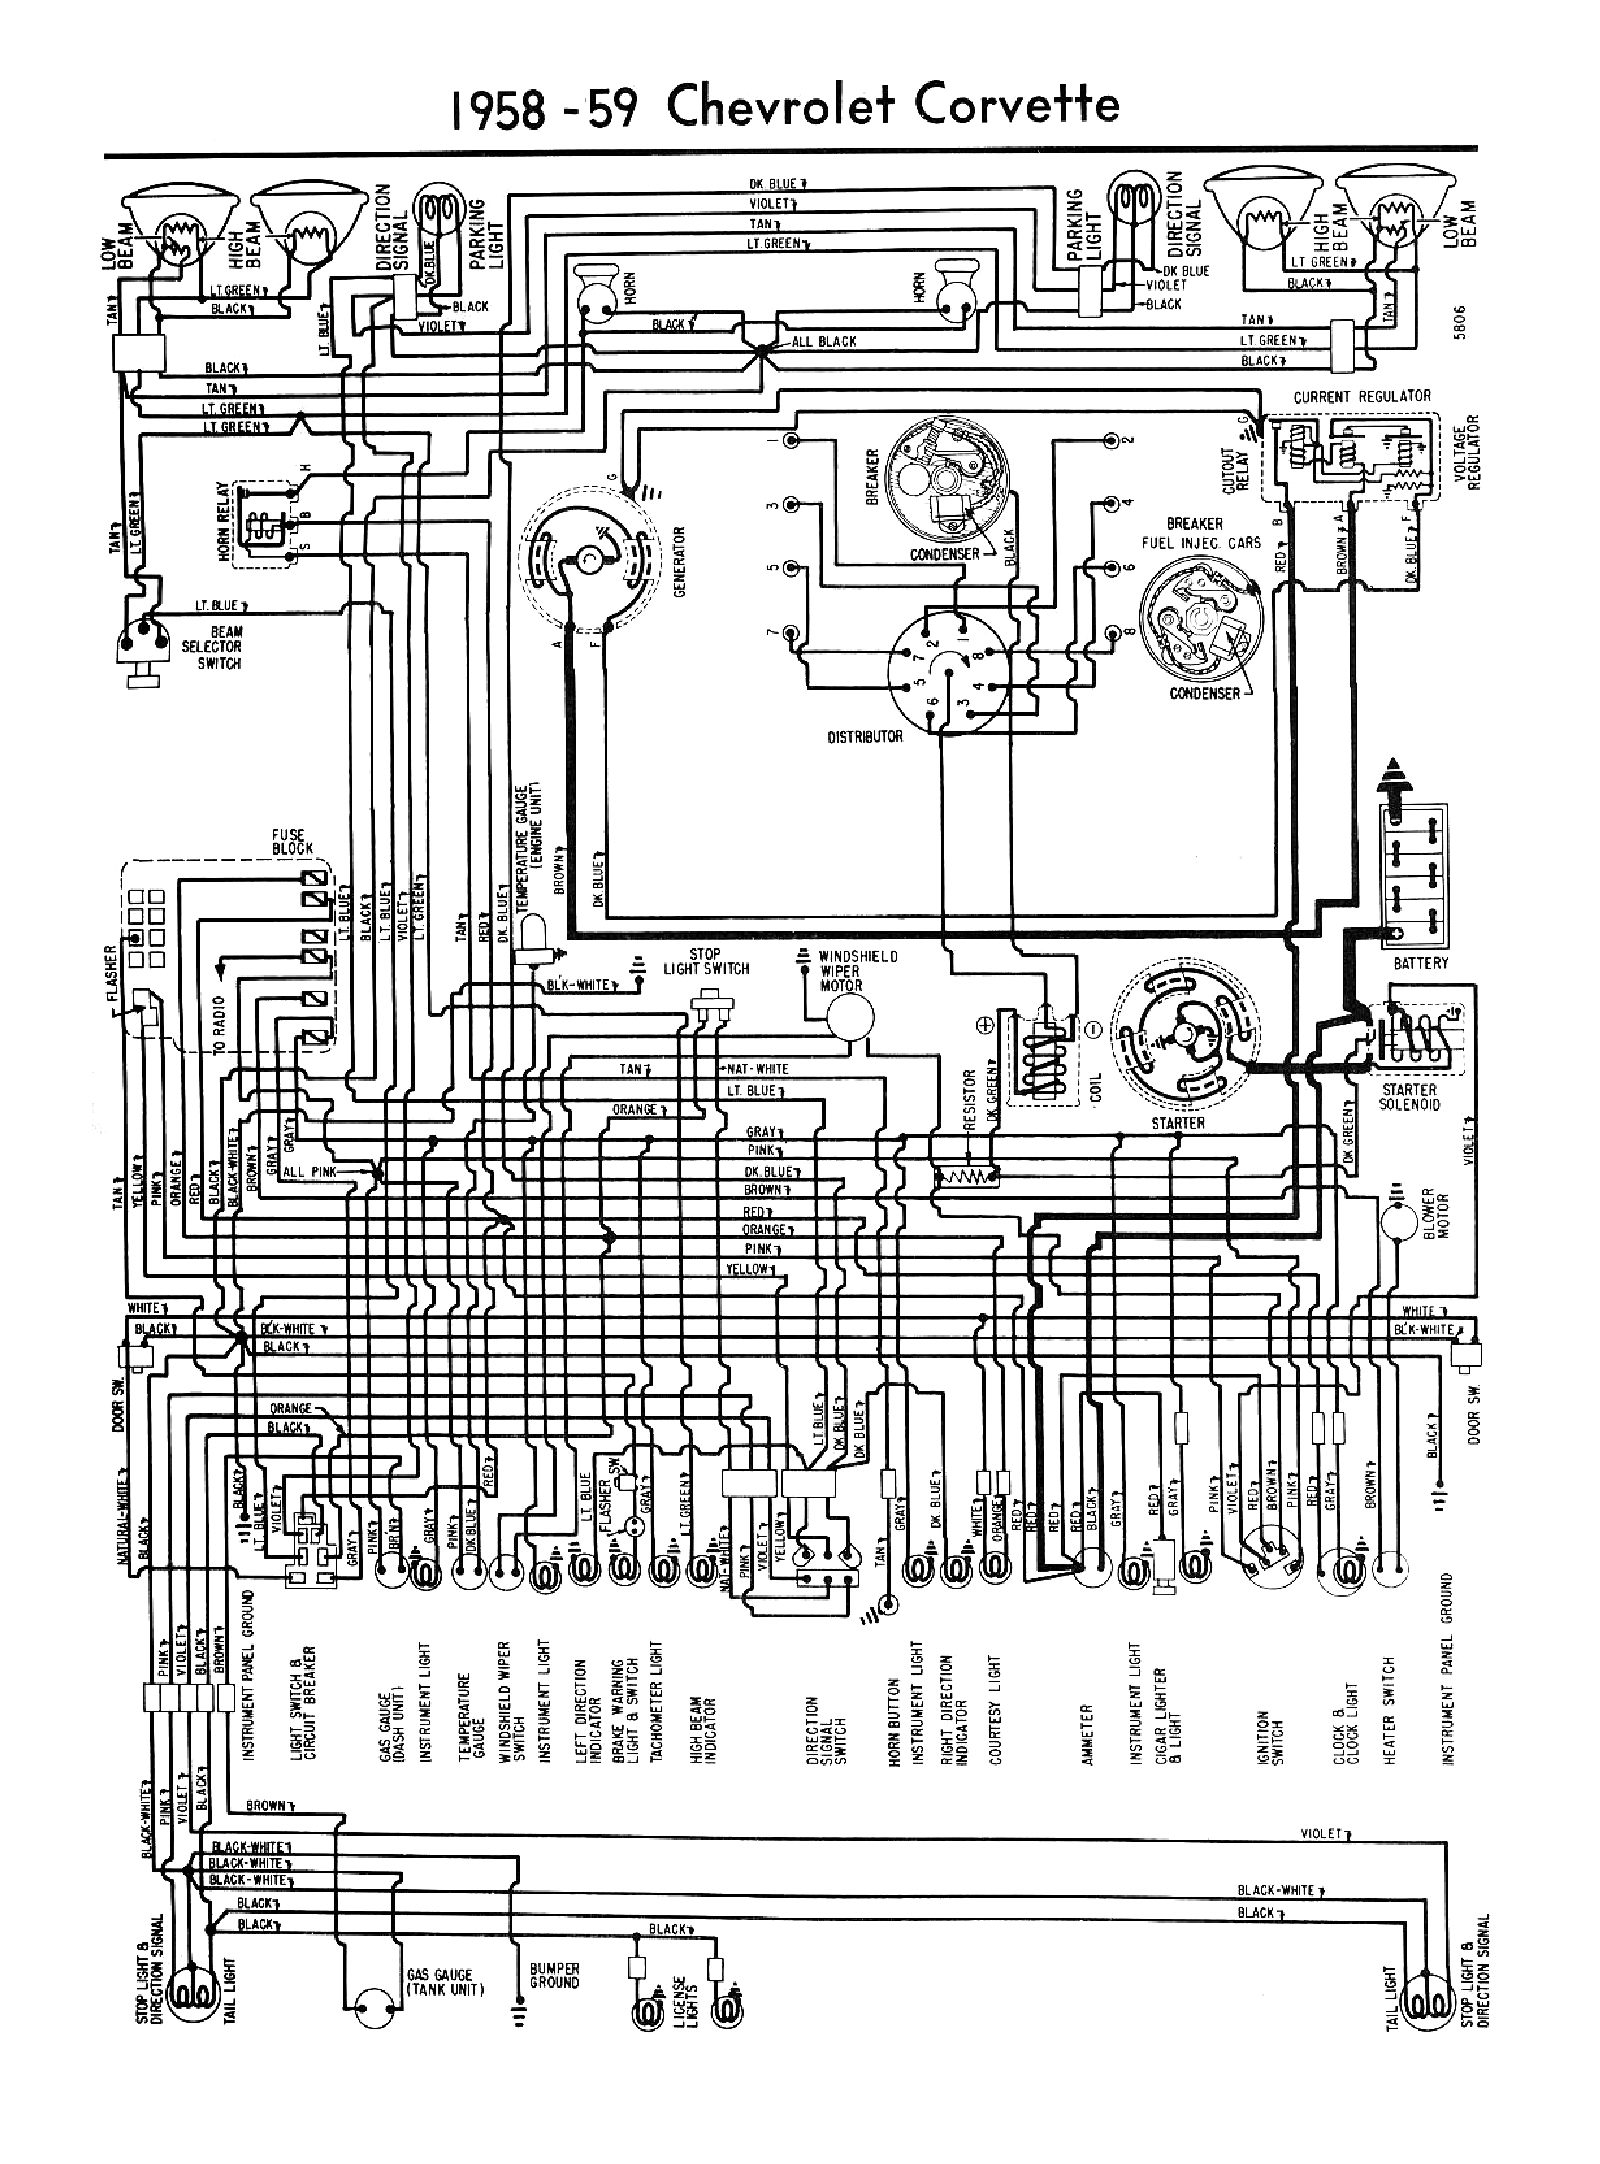 1974 Corvette Fuse Box Wiring Library C3 1972 Chevy Truck Diagram Pdf Simple 2014 Chevrolet Pu 1970